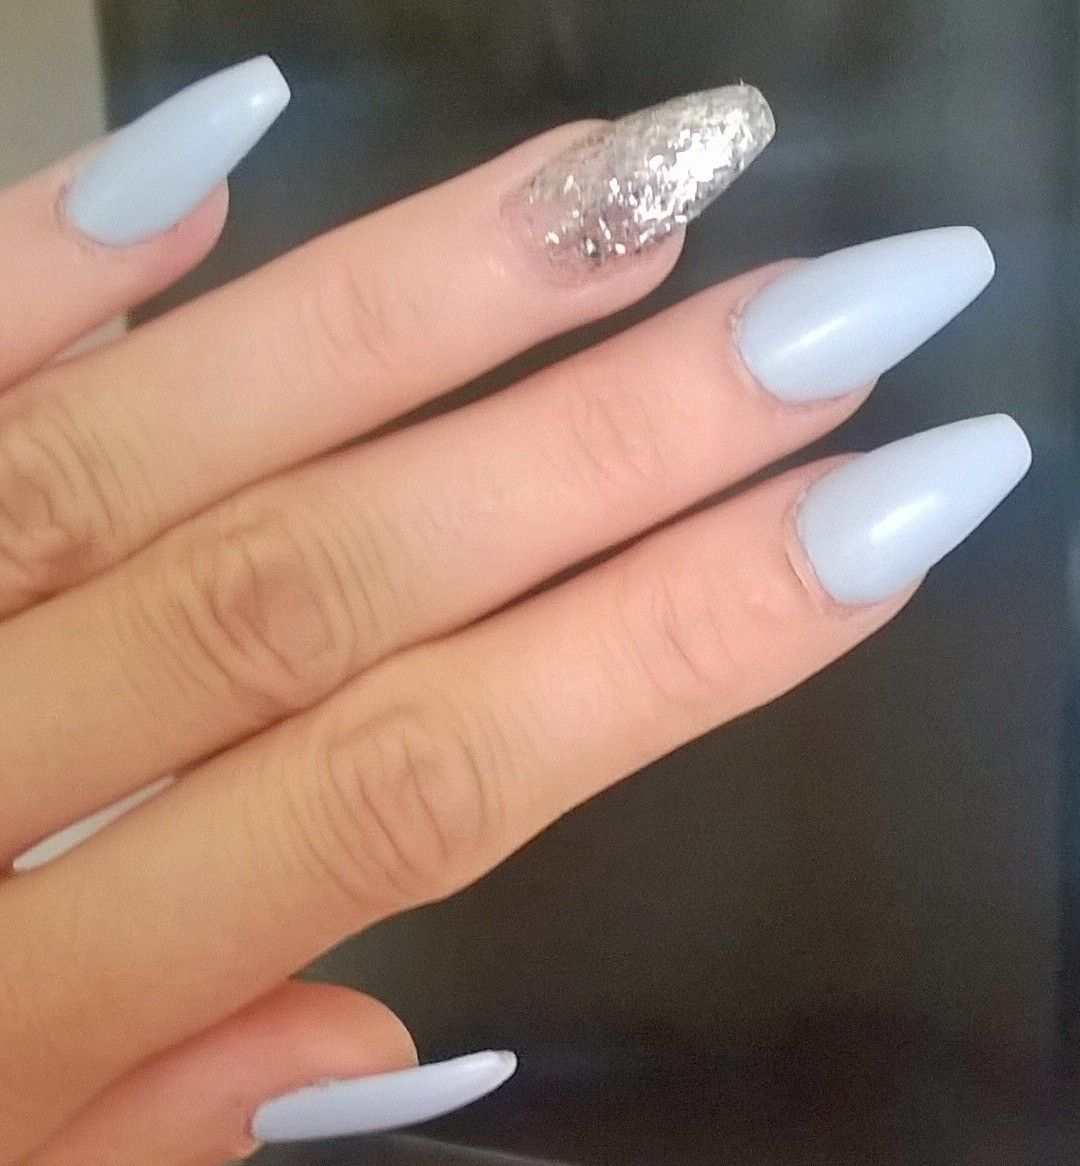 Acrylic Nails With Glitter On Ring Finger